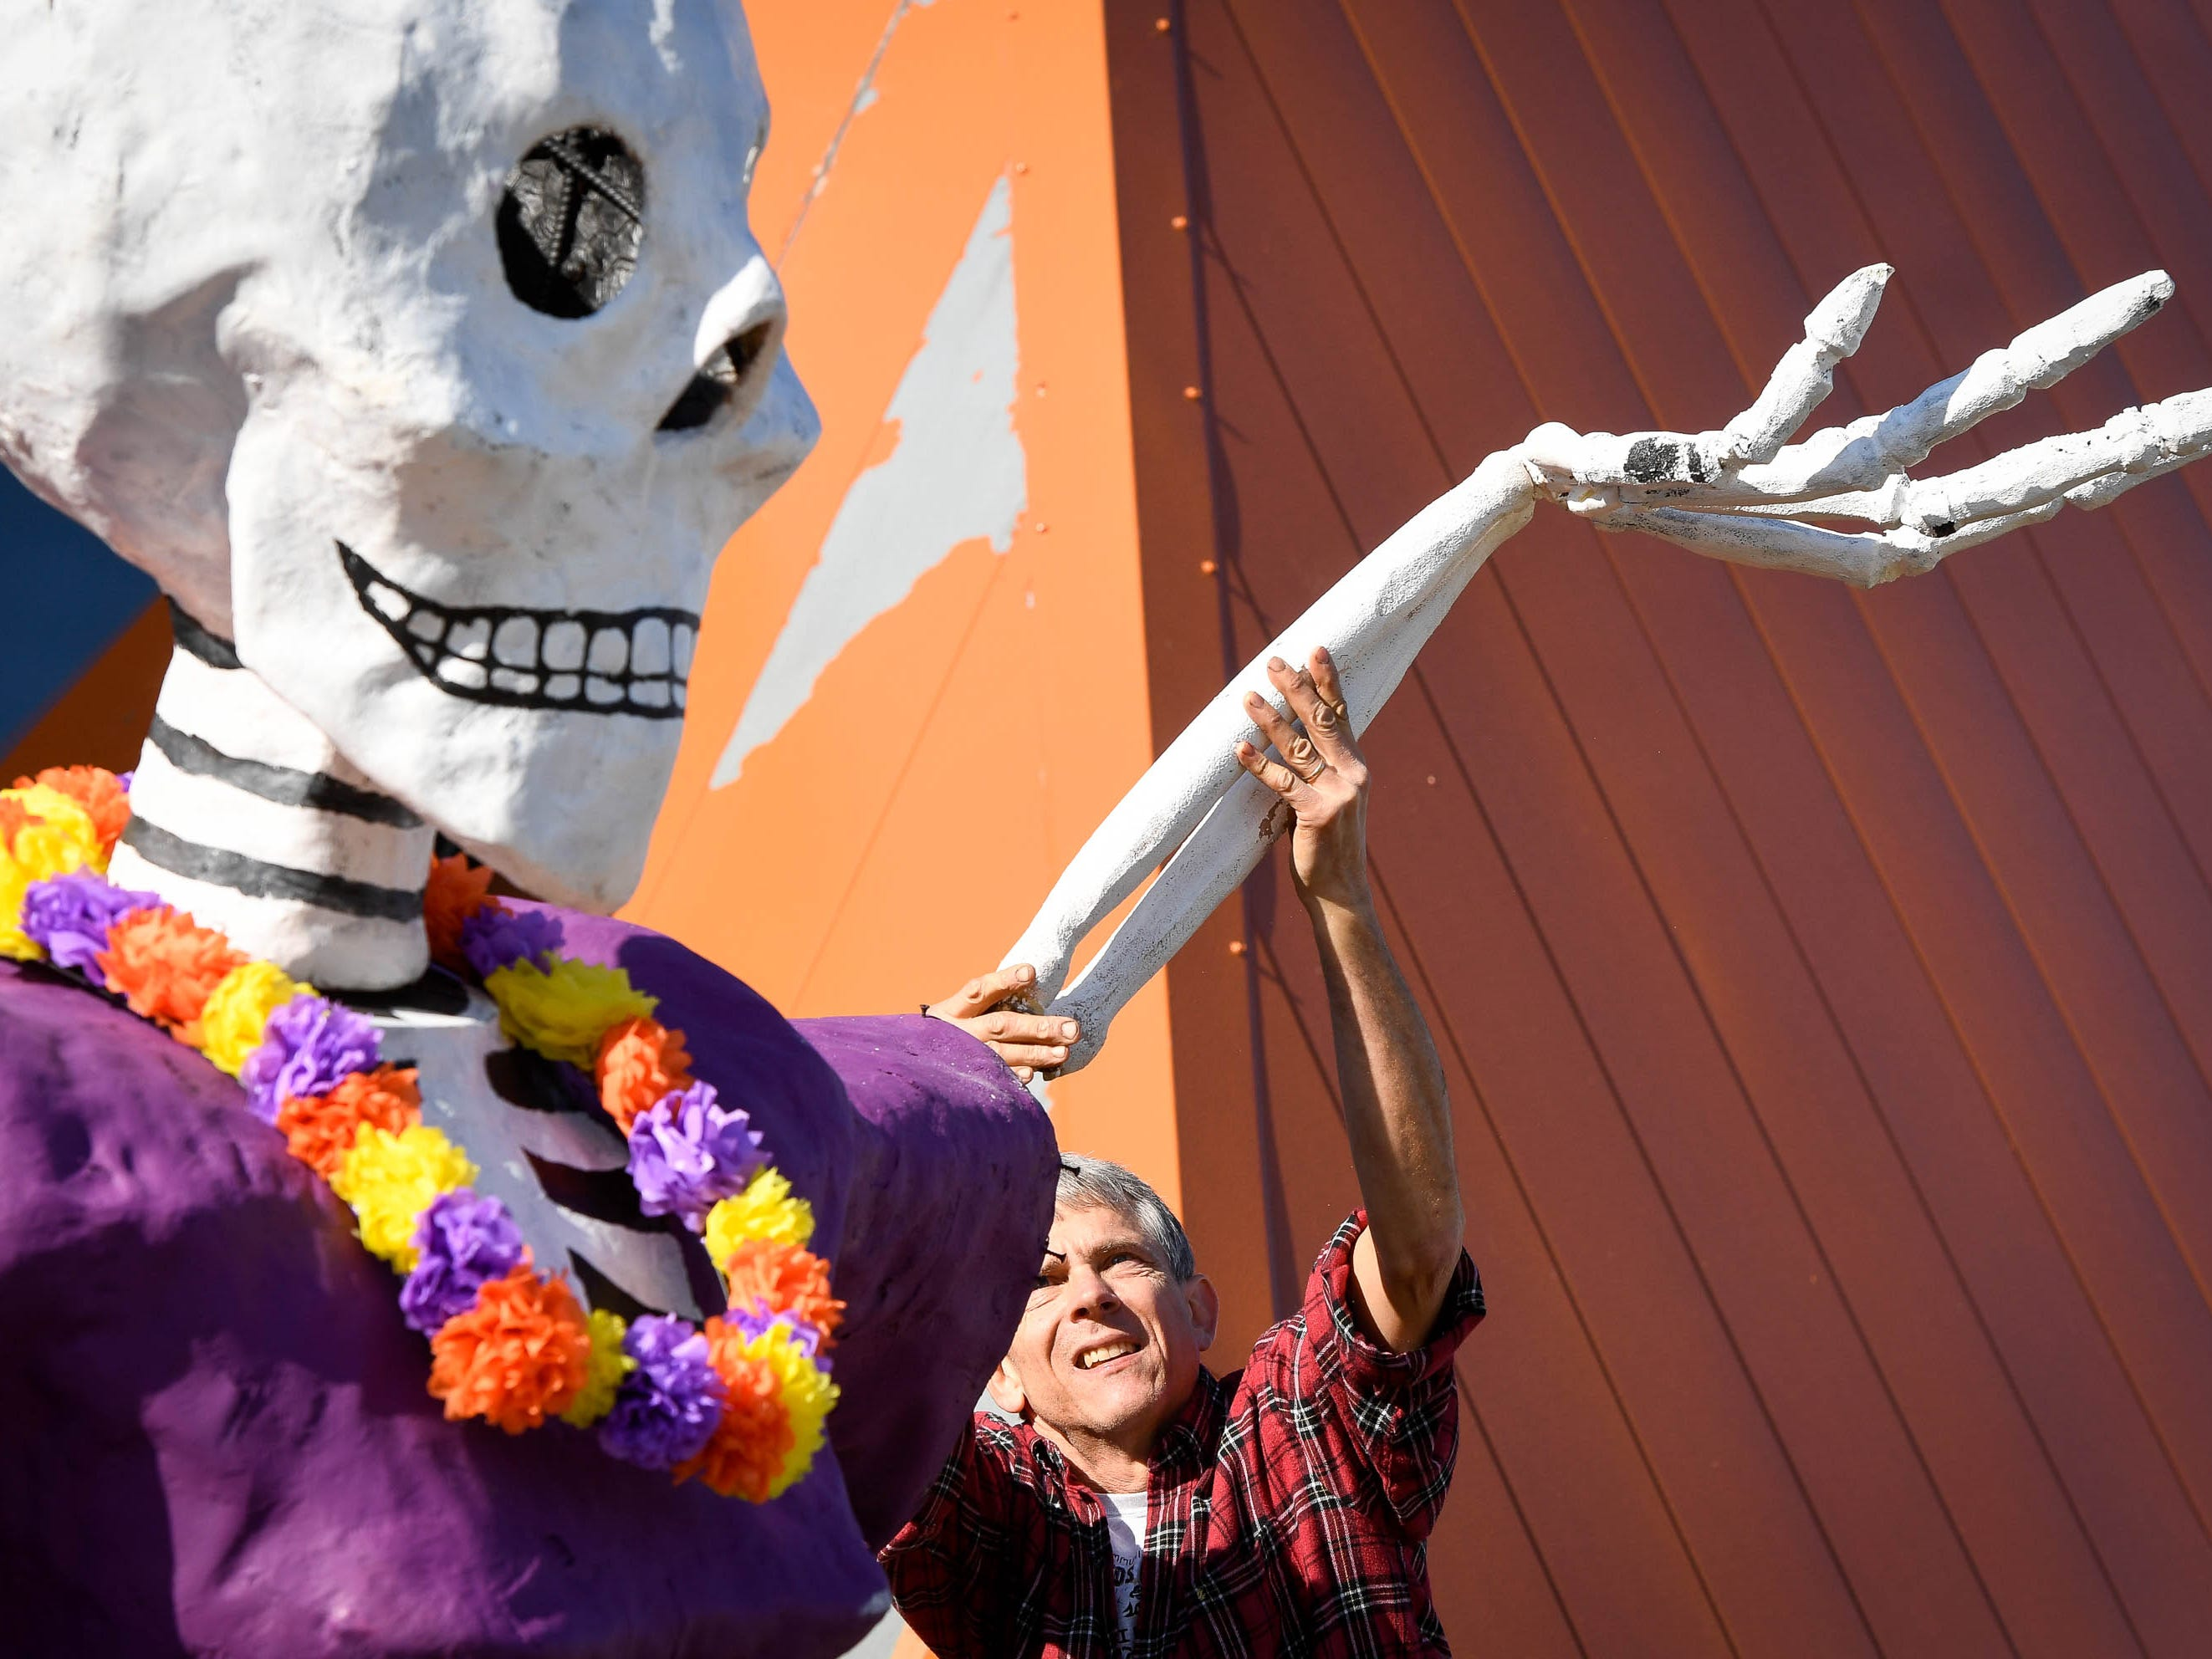 Eric Ridenourr with Montessori Academy attaches one of the arms to the folk caricature La Catrina guarding the door to the museum  at the Day of the Dead held at Evansville's Angel Mounds State Historic Site Saturday, November 3, 2108.